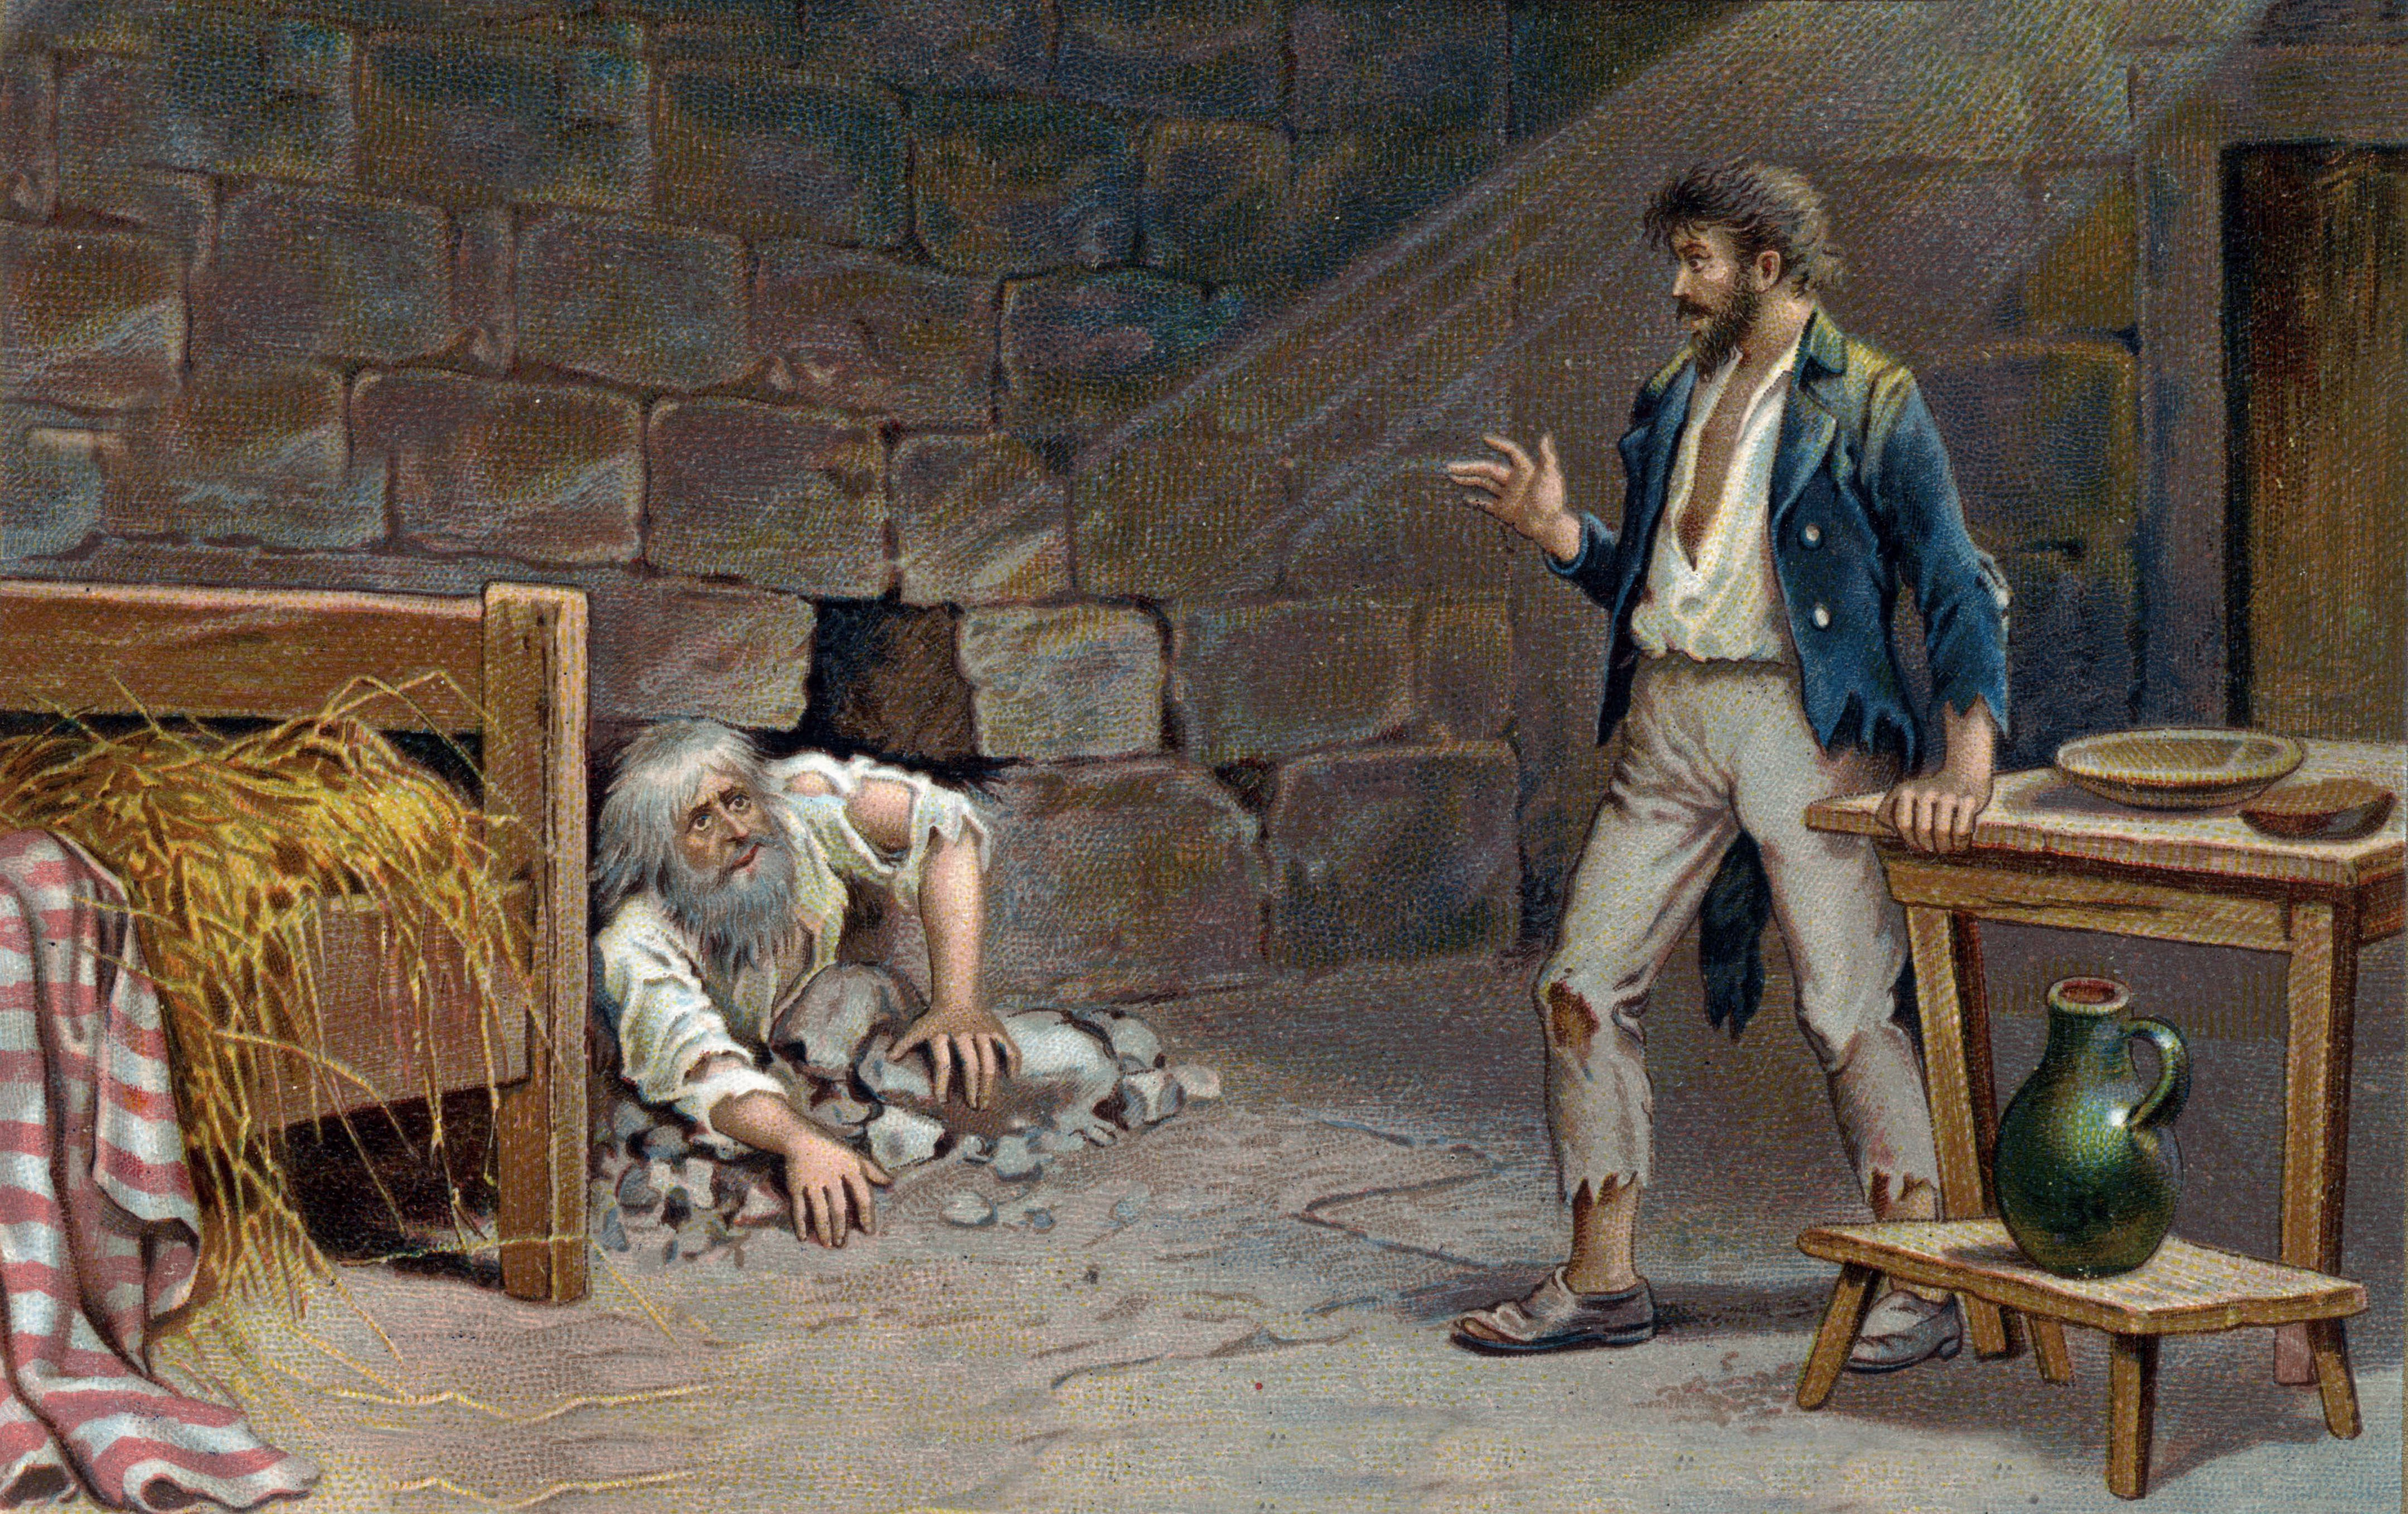 Illustration of Edmond Dantes and Faria Working on an Escape Tunnel